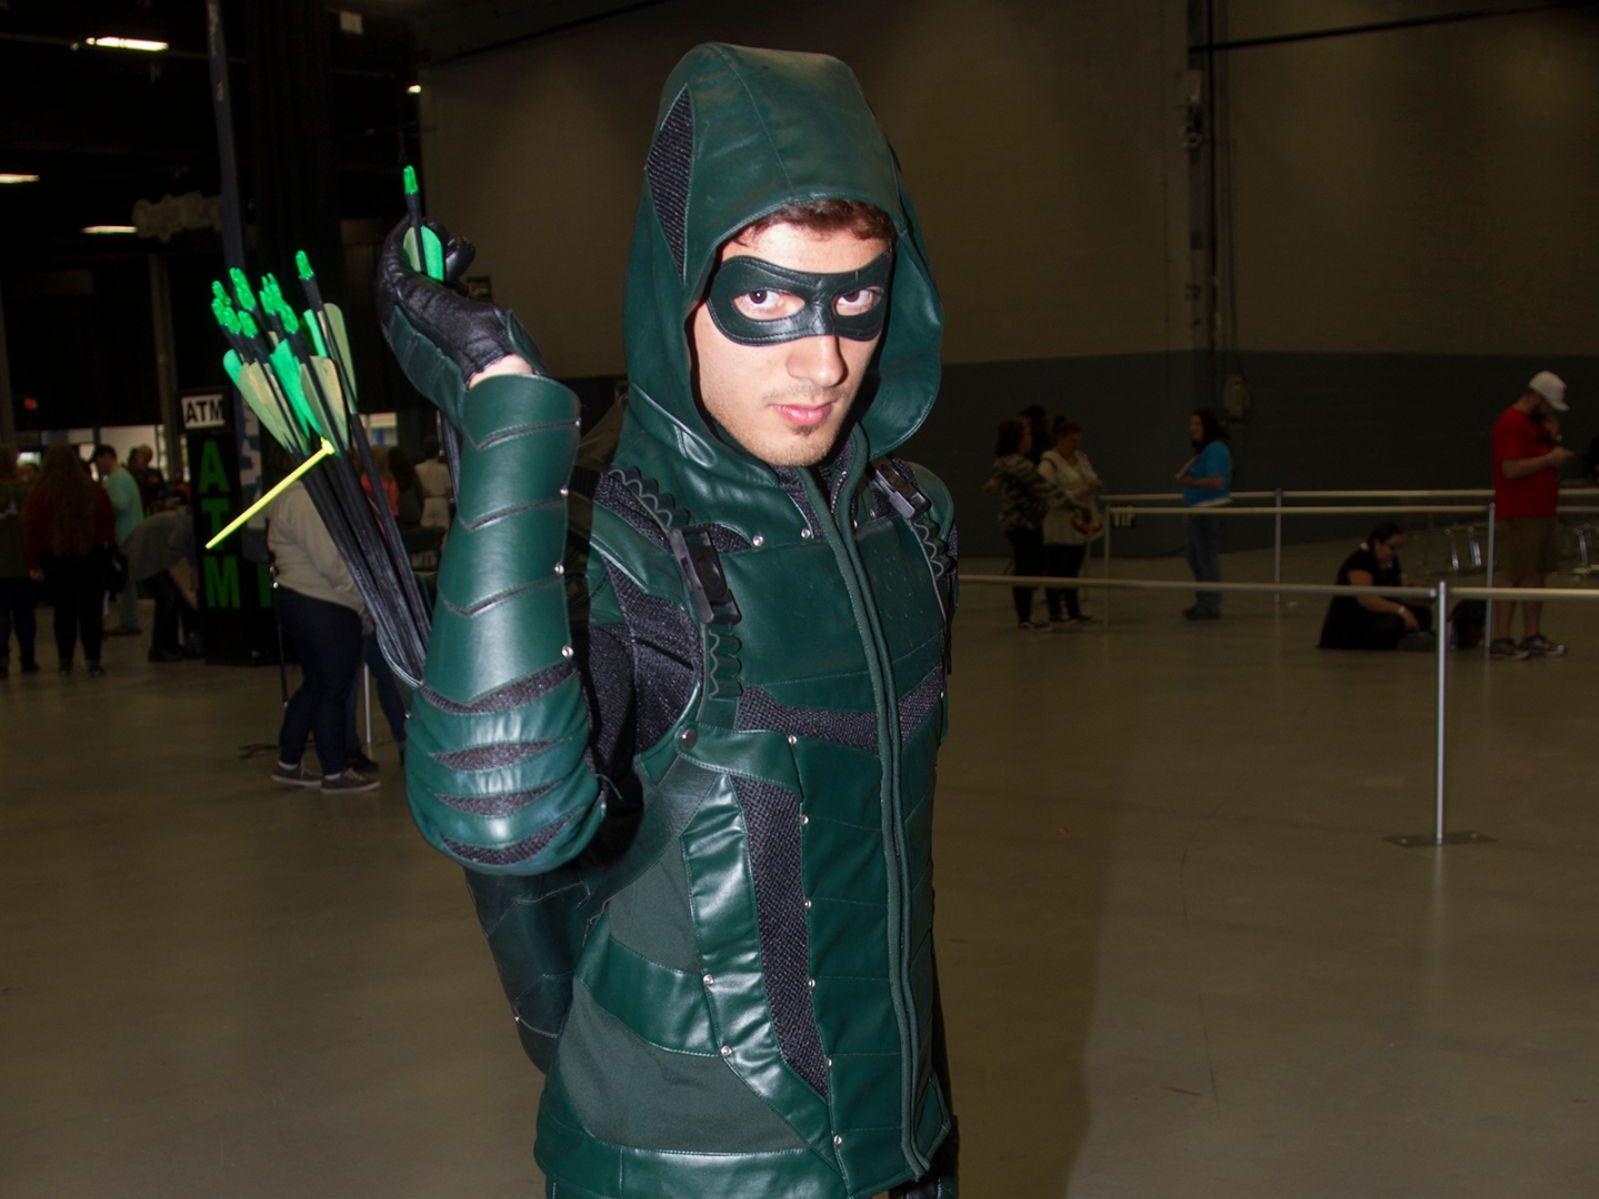 Jeff as Green Arrow. The 2018 Heroes and Villains Fan Fest took place at the New Jersey Convention & Expo Center. 09/09/2018